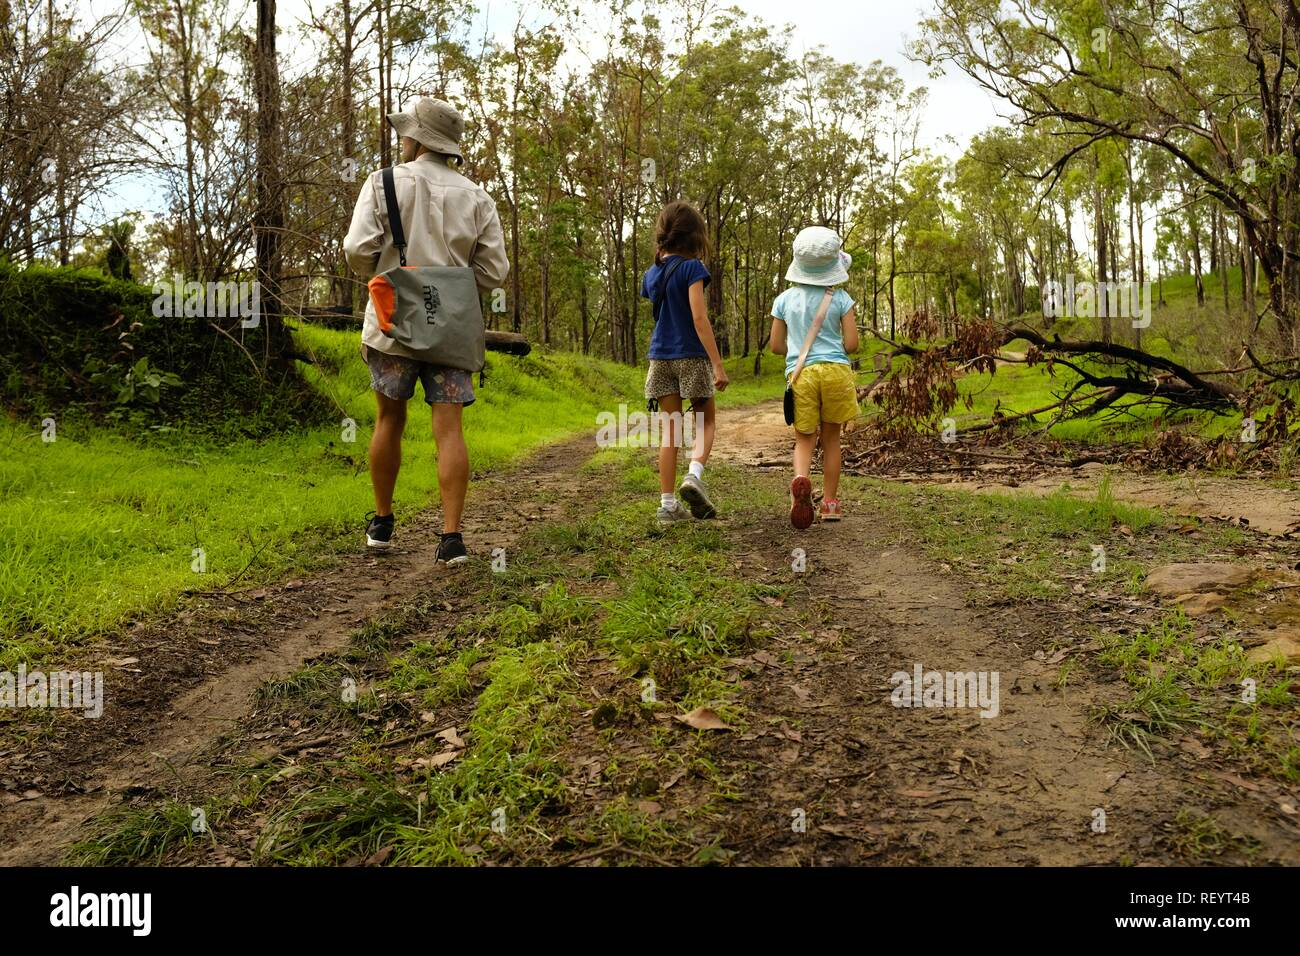 Children and father walking along a four wheel drive track through a forest, Mia Mia State Forest, Queensland, Australia Stock Photo